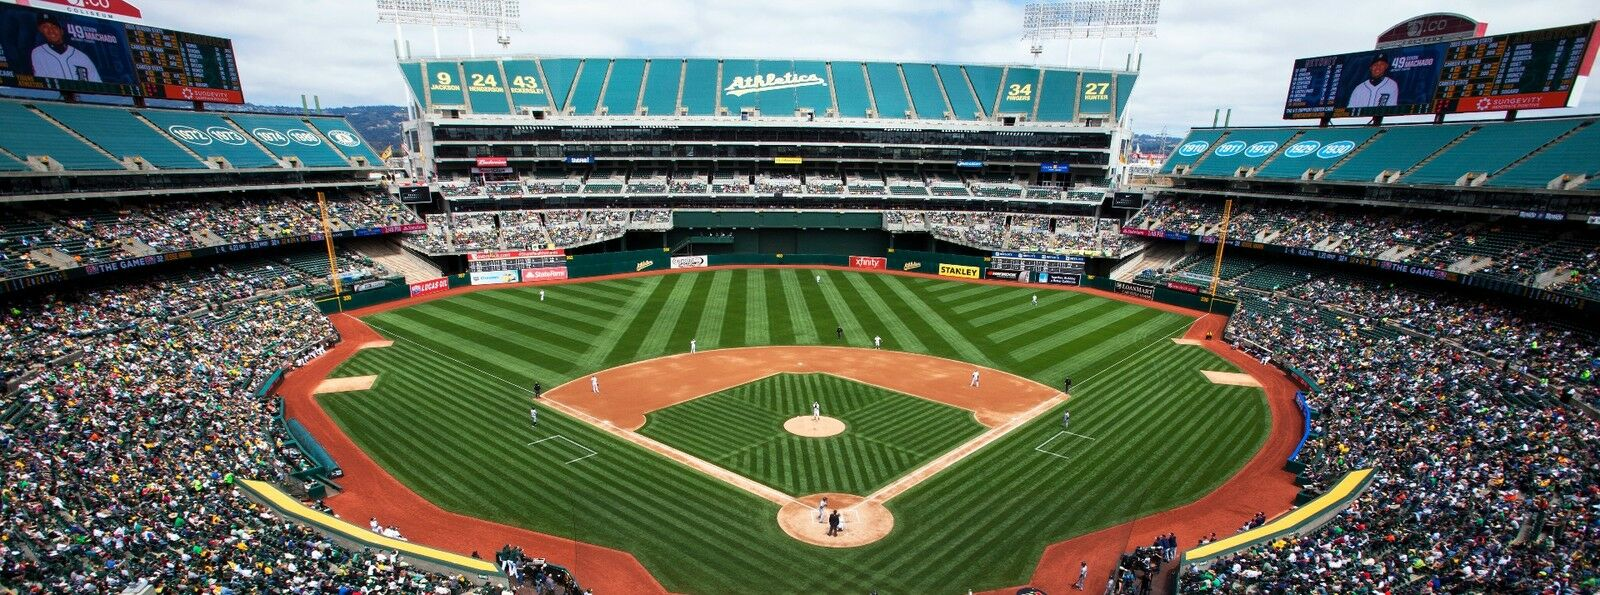 Texas Rangers at Oakland Athletics Tickets (Star Wars Fireworks)